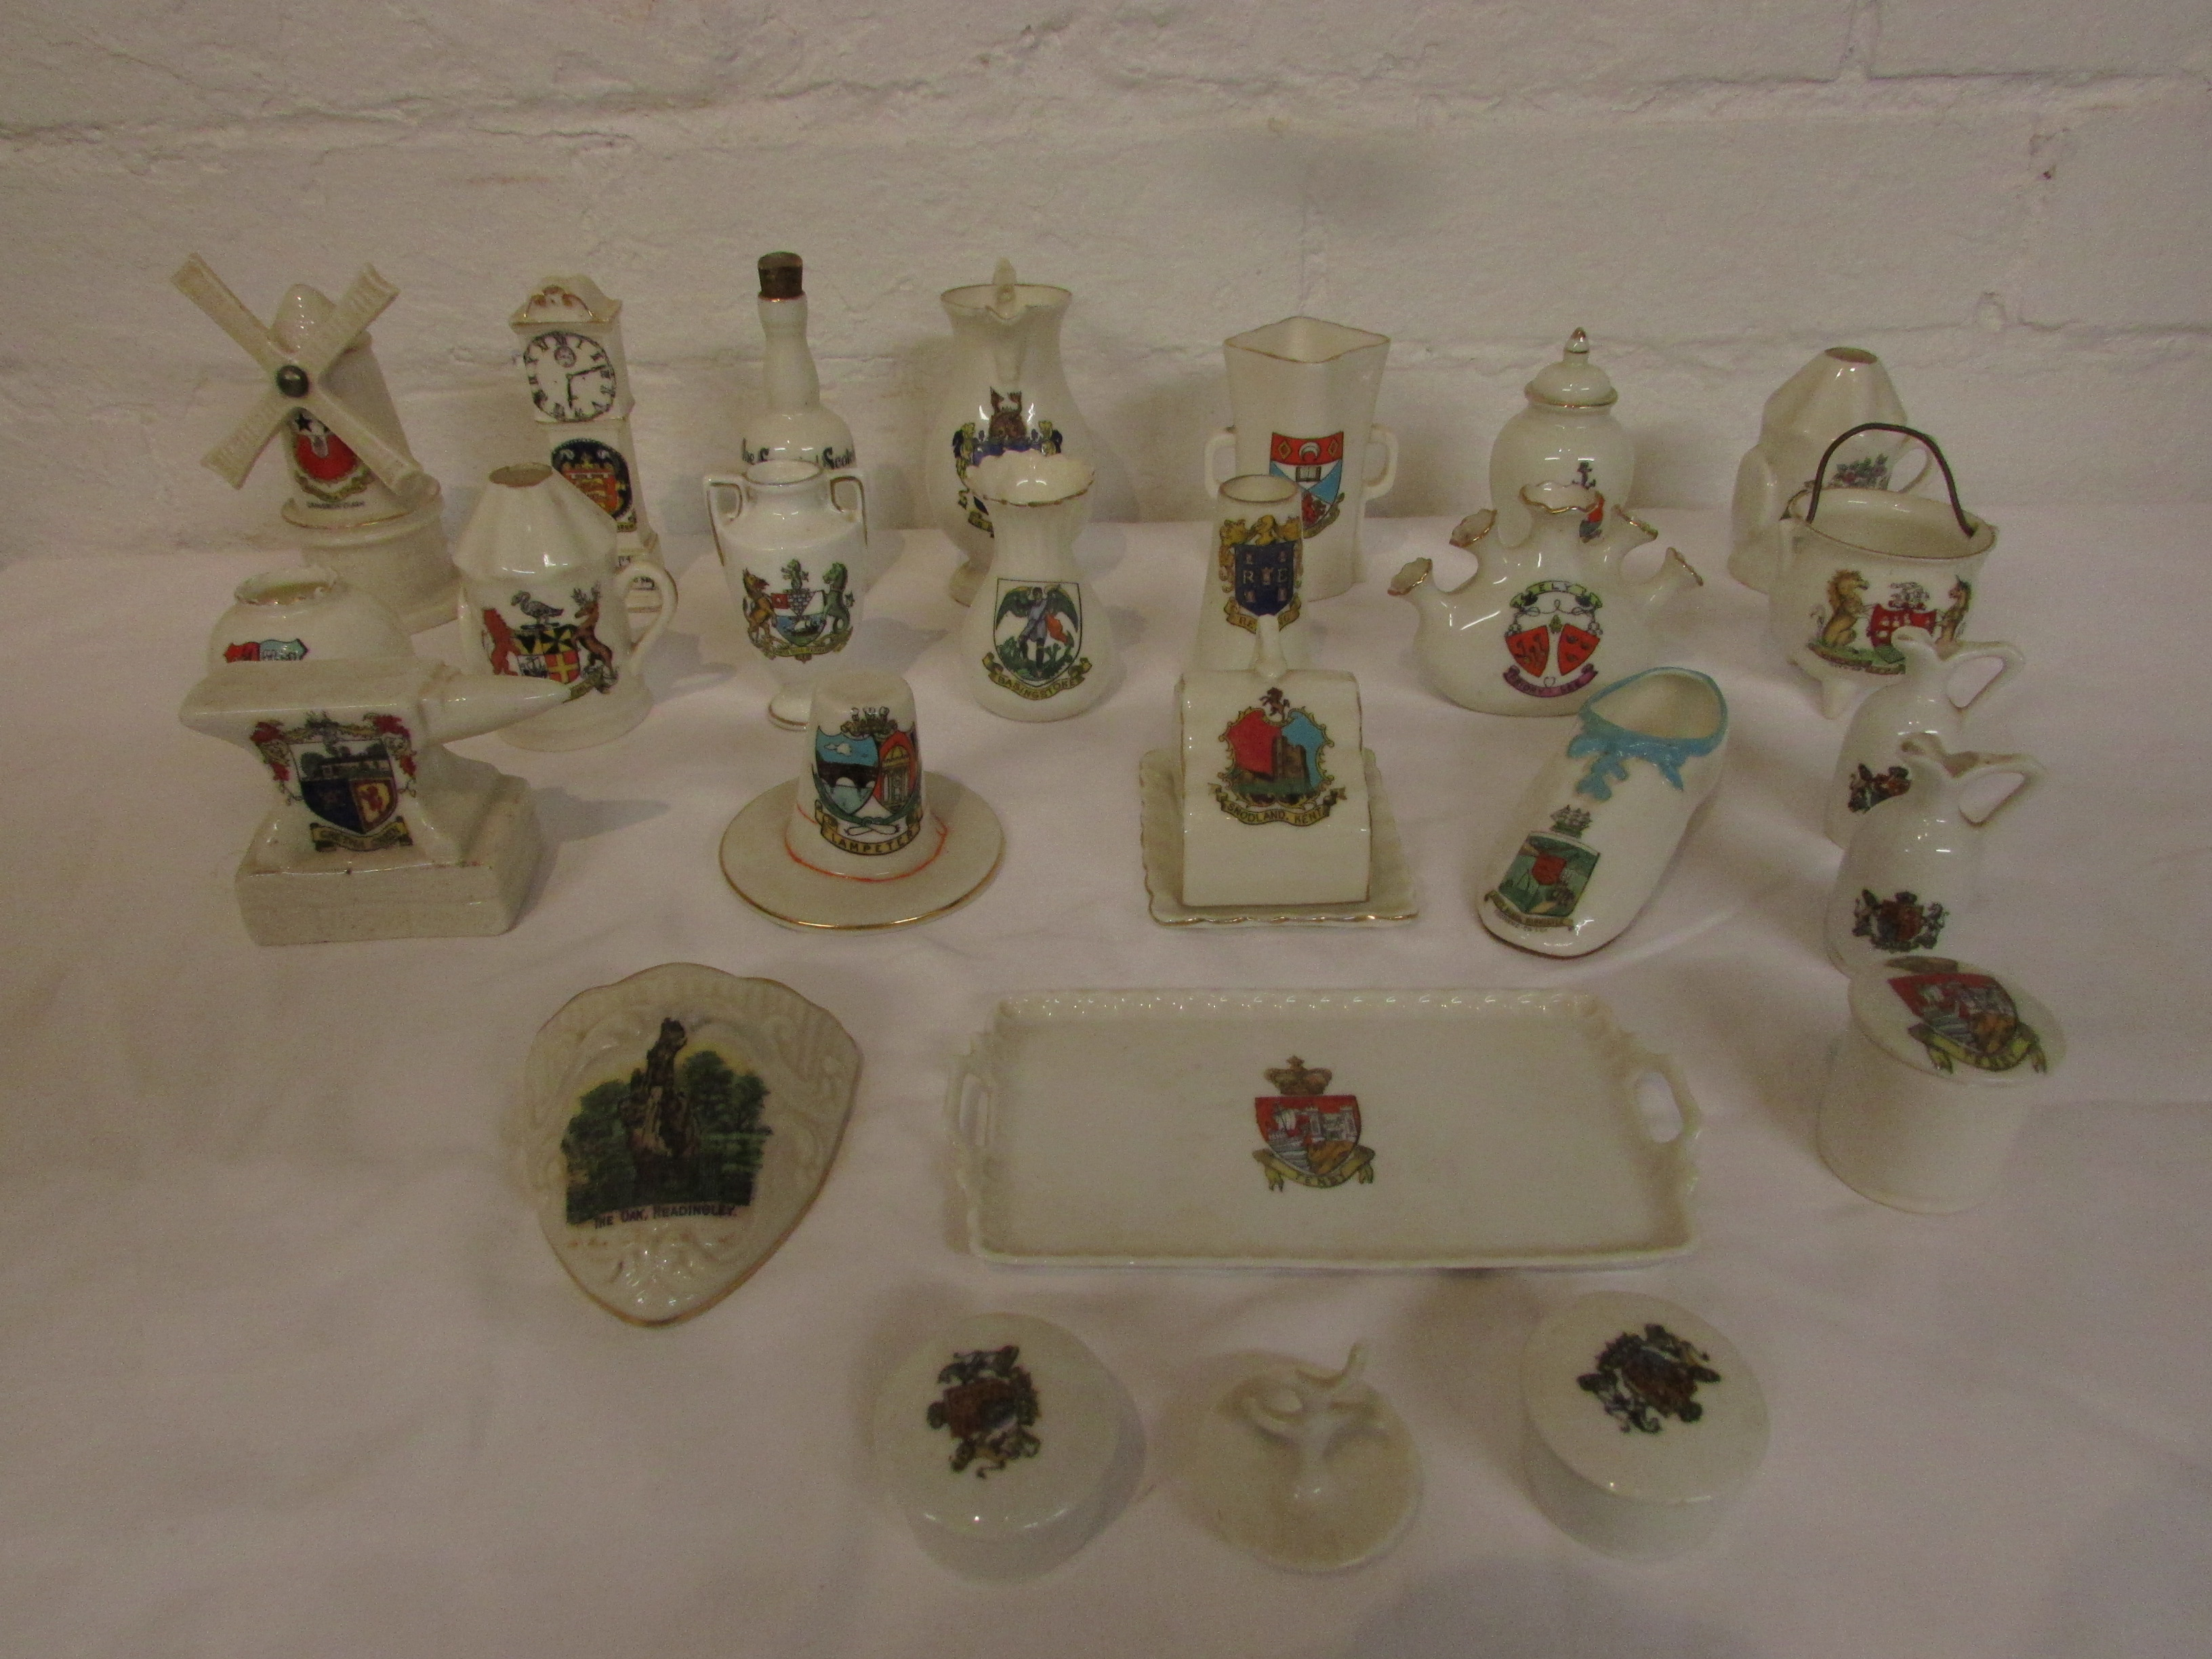 Lot 52 - Twenty-five items of crested china depicting various objects, windmill, clock, anvil etc - Goss,